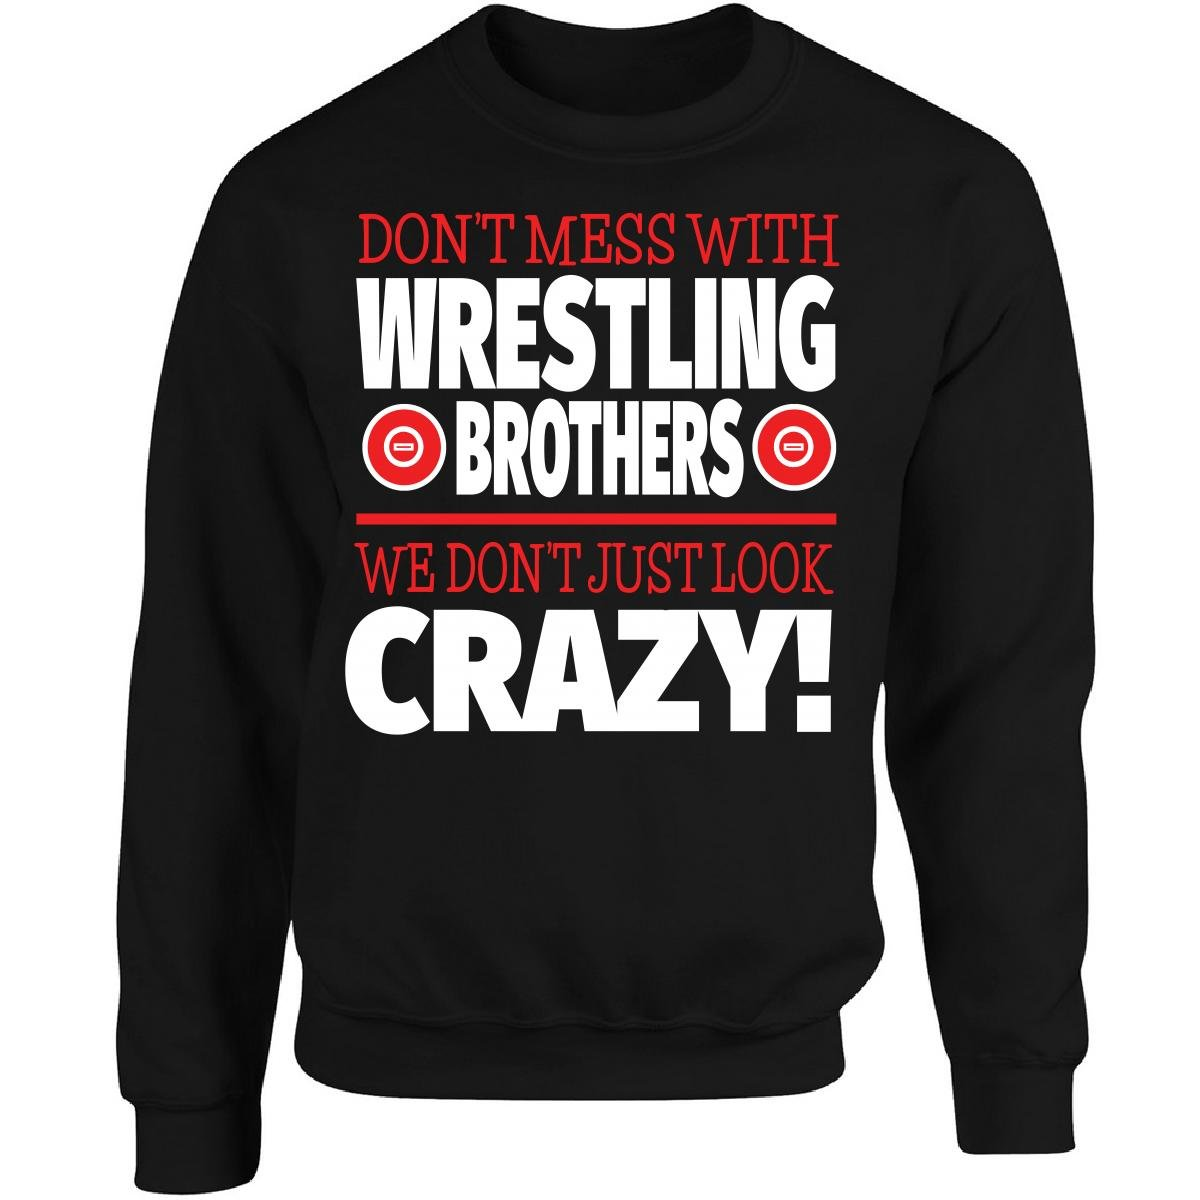 Eternally Gifted Crazy Wrestling Family - Don't Mess With Wrestling Brothers - Adult Sweatshirt by Eternally Gifted